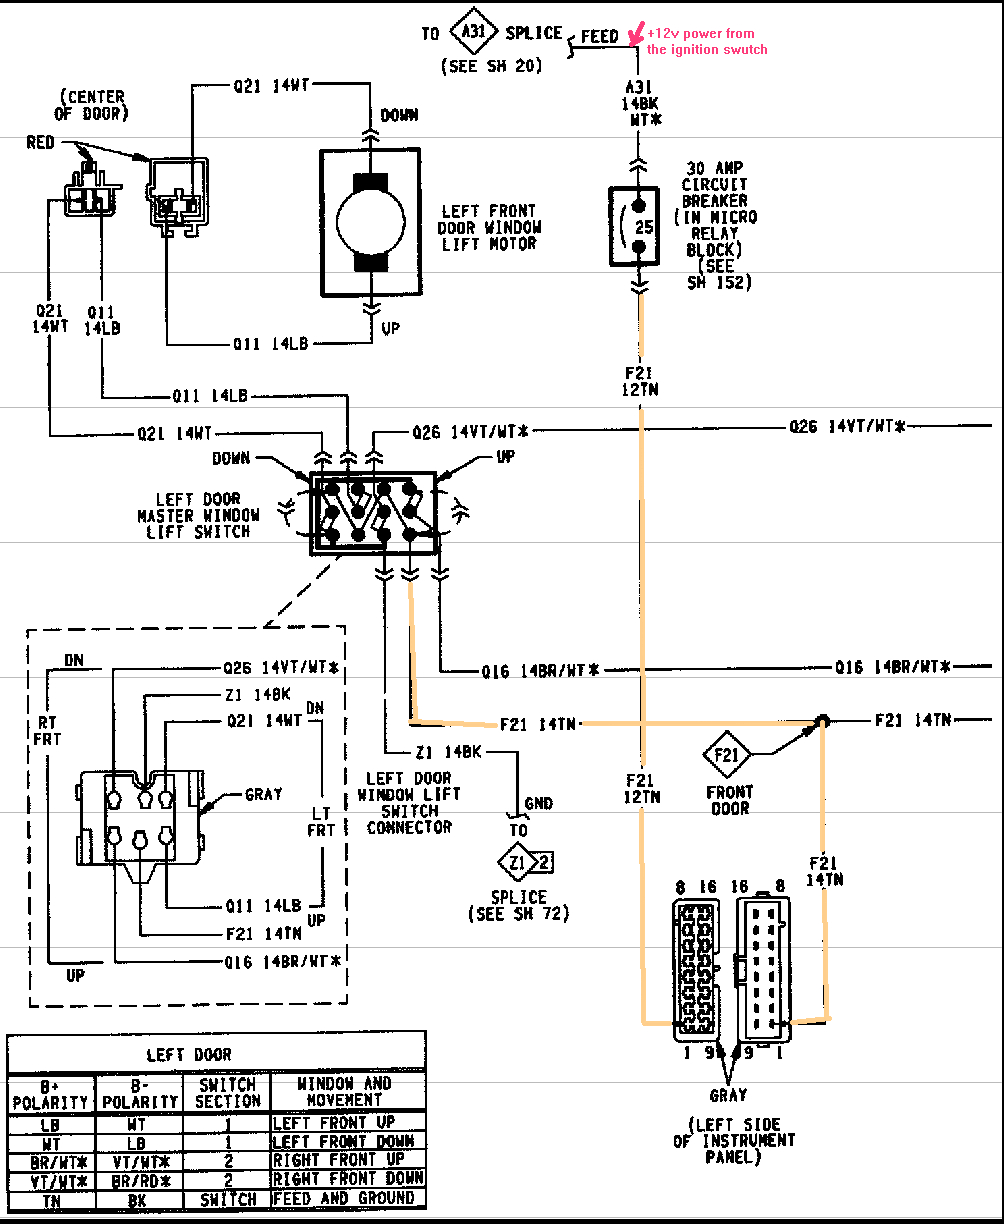 98 Plymouth Power Window Switch Wiring Diagram | 1994 Plymouth Grand - Power Window Switch Wiring Diagram